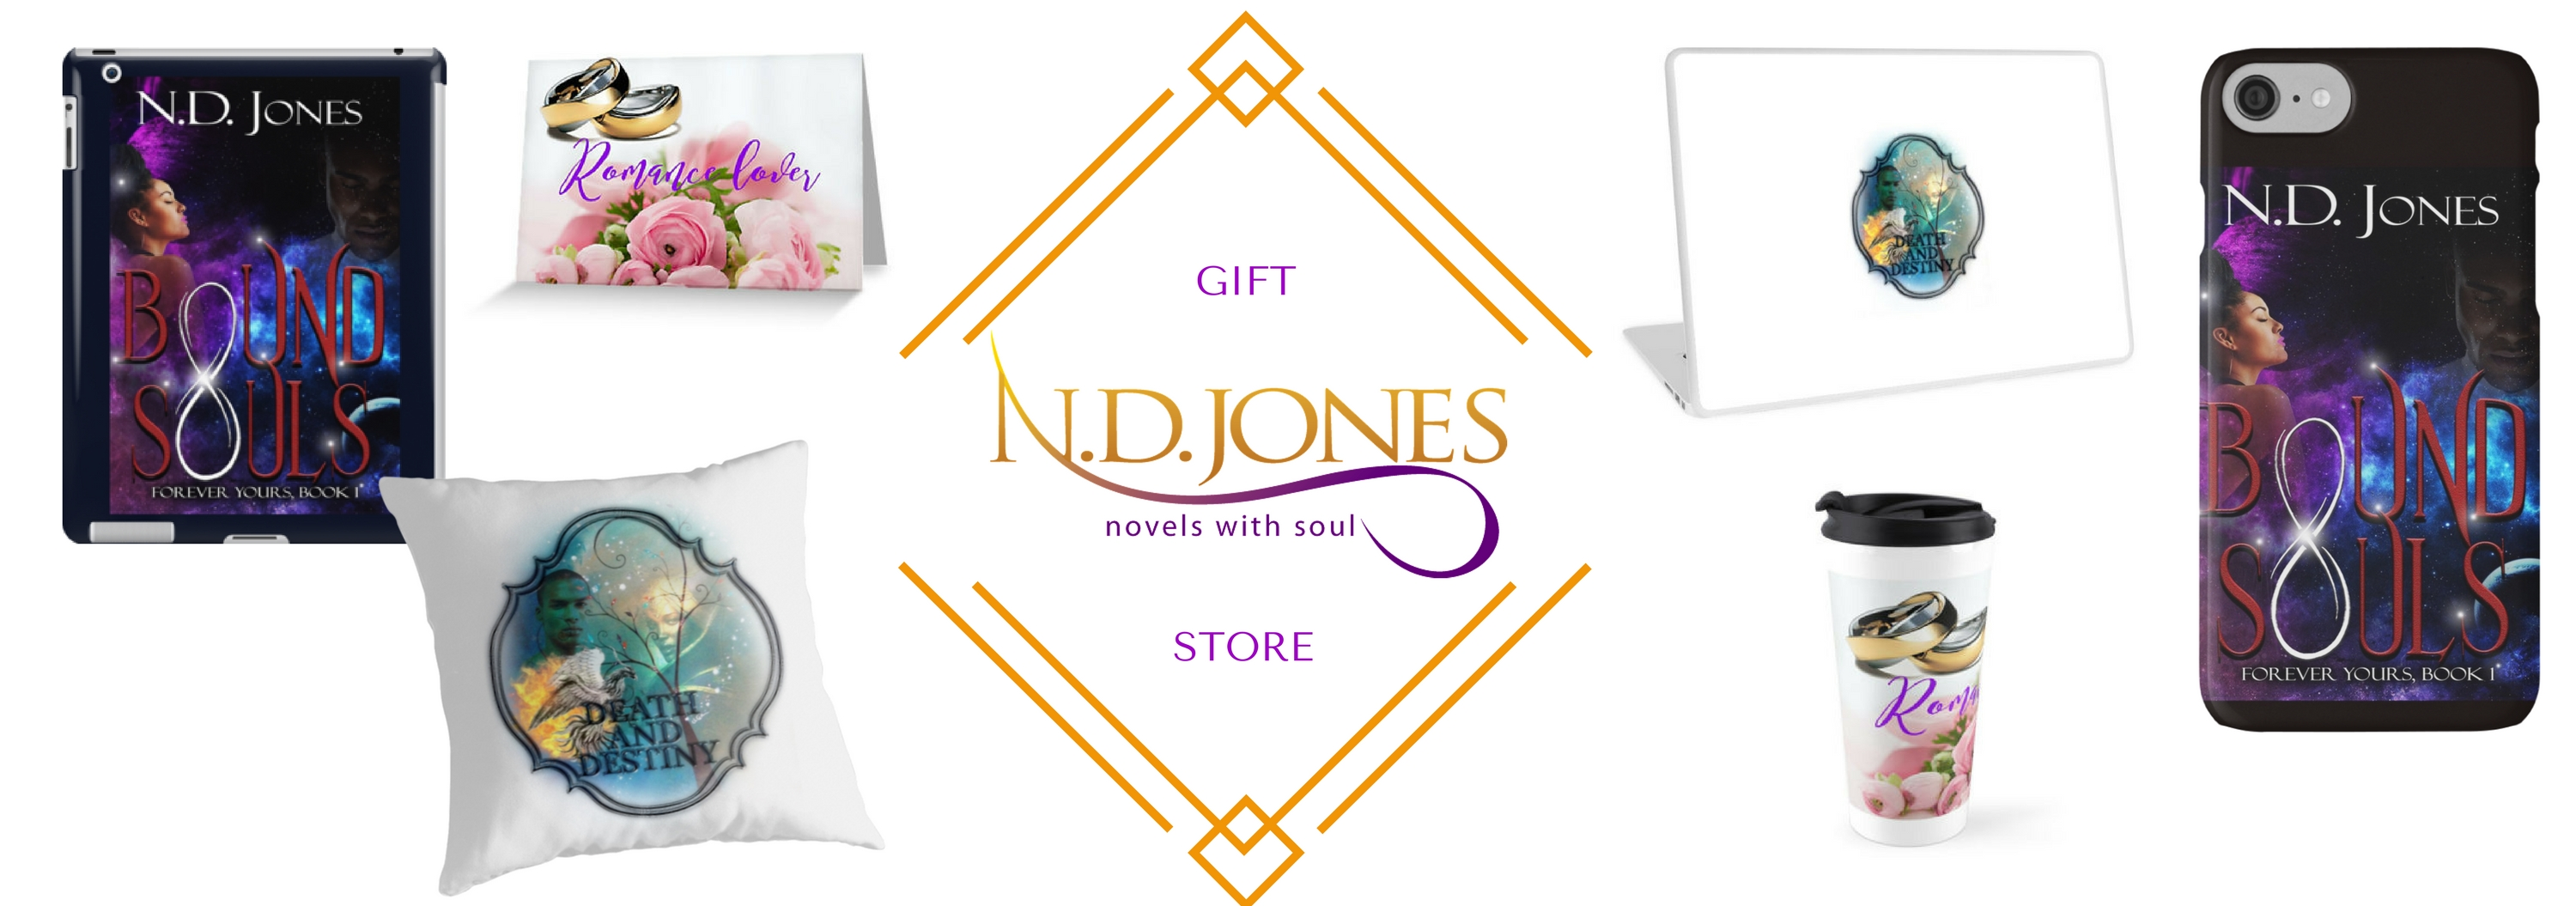 ND JONES ONLINE GIFT STORE